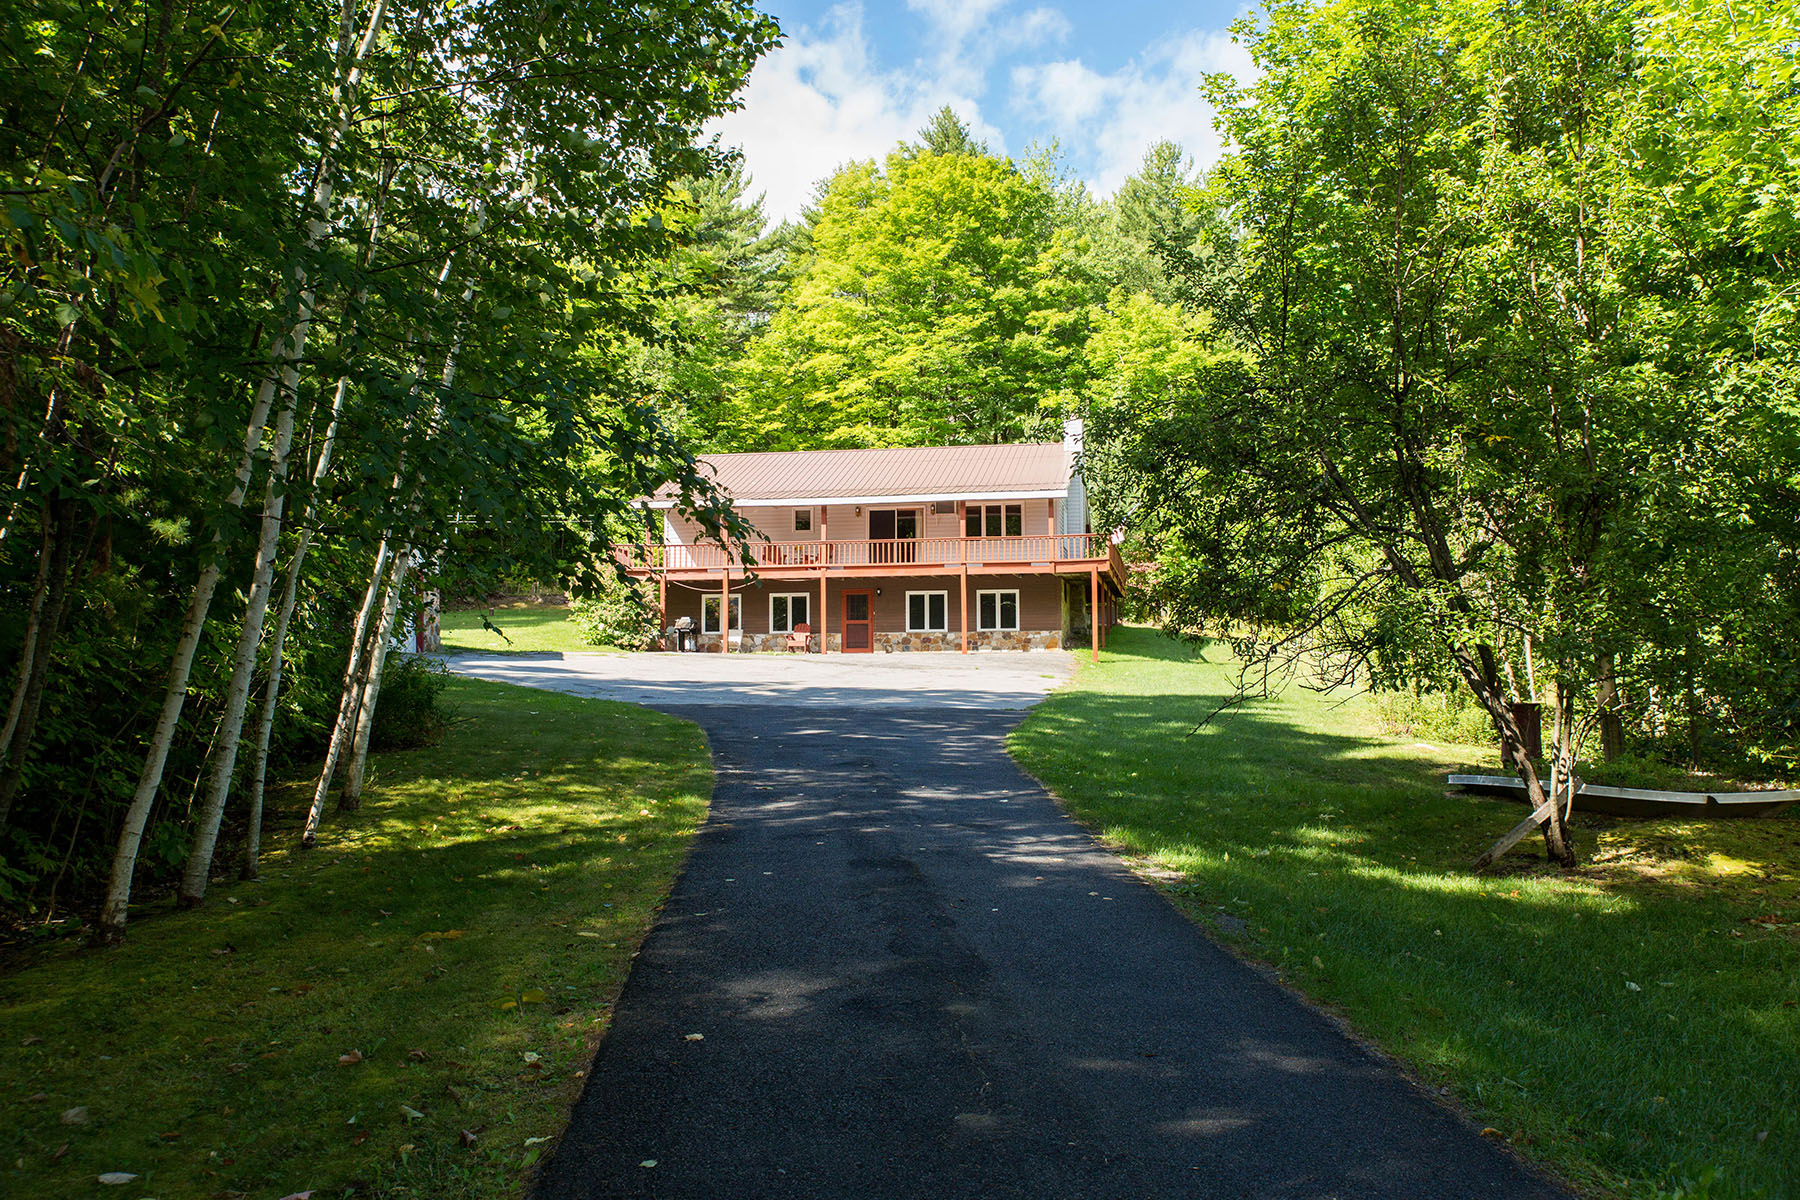 Single Family Home for Sale at Follow the Path to Your Adirondack Retreat 6 Jakes Rd Hague, 12836 United States